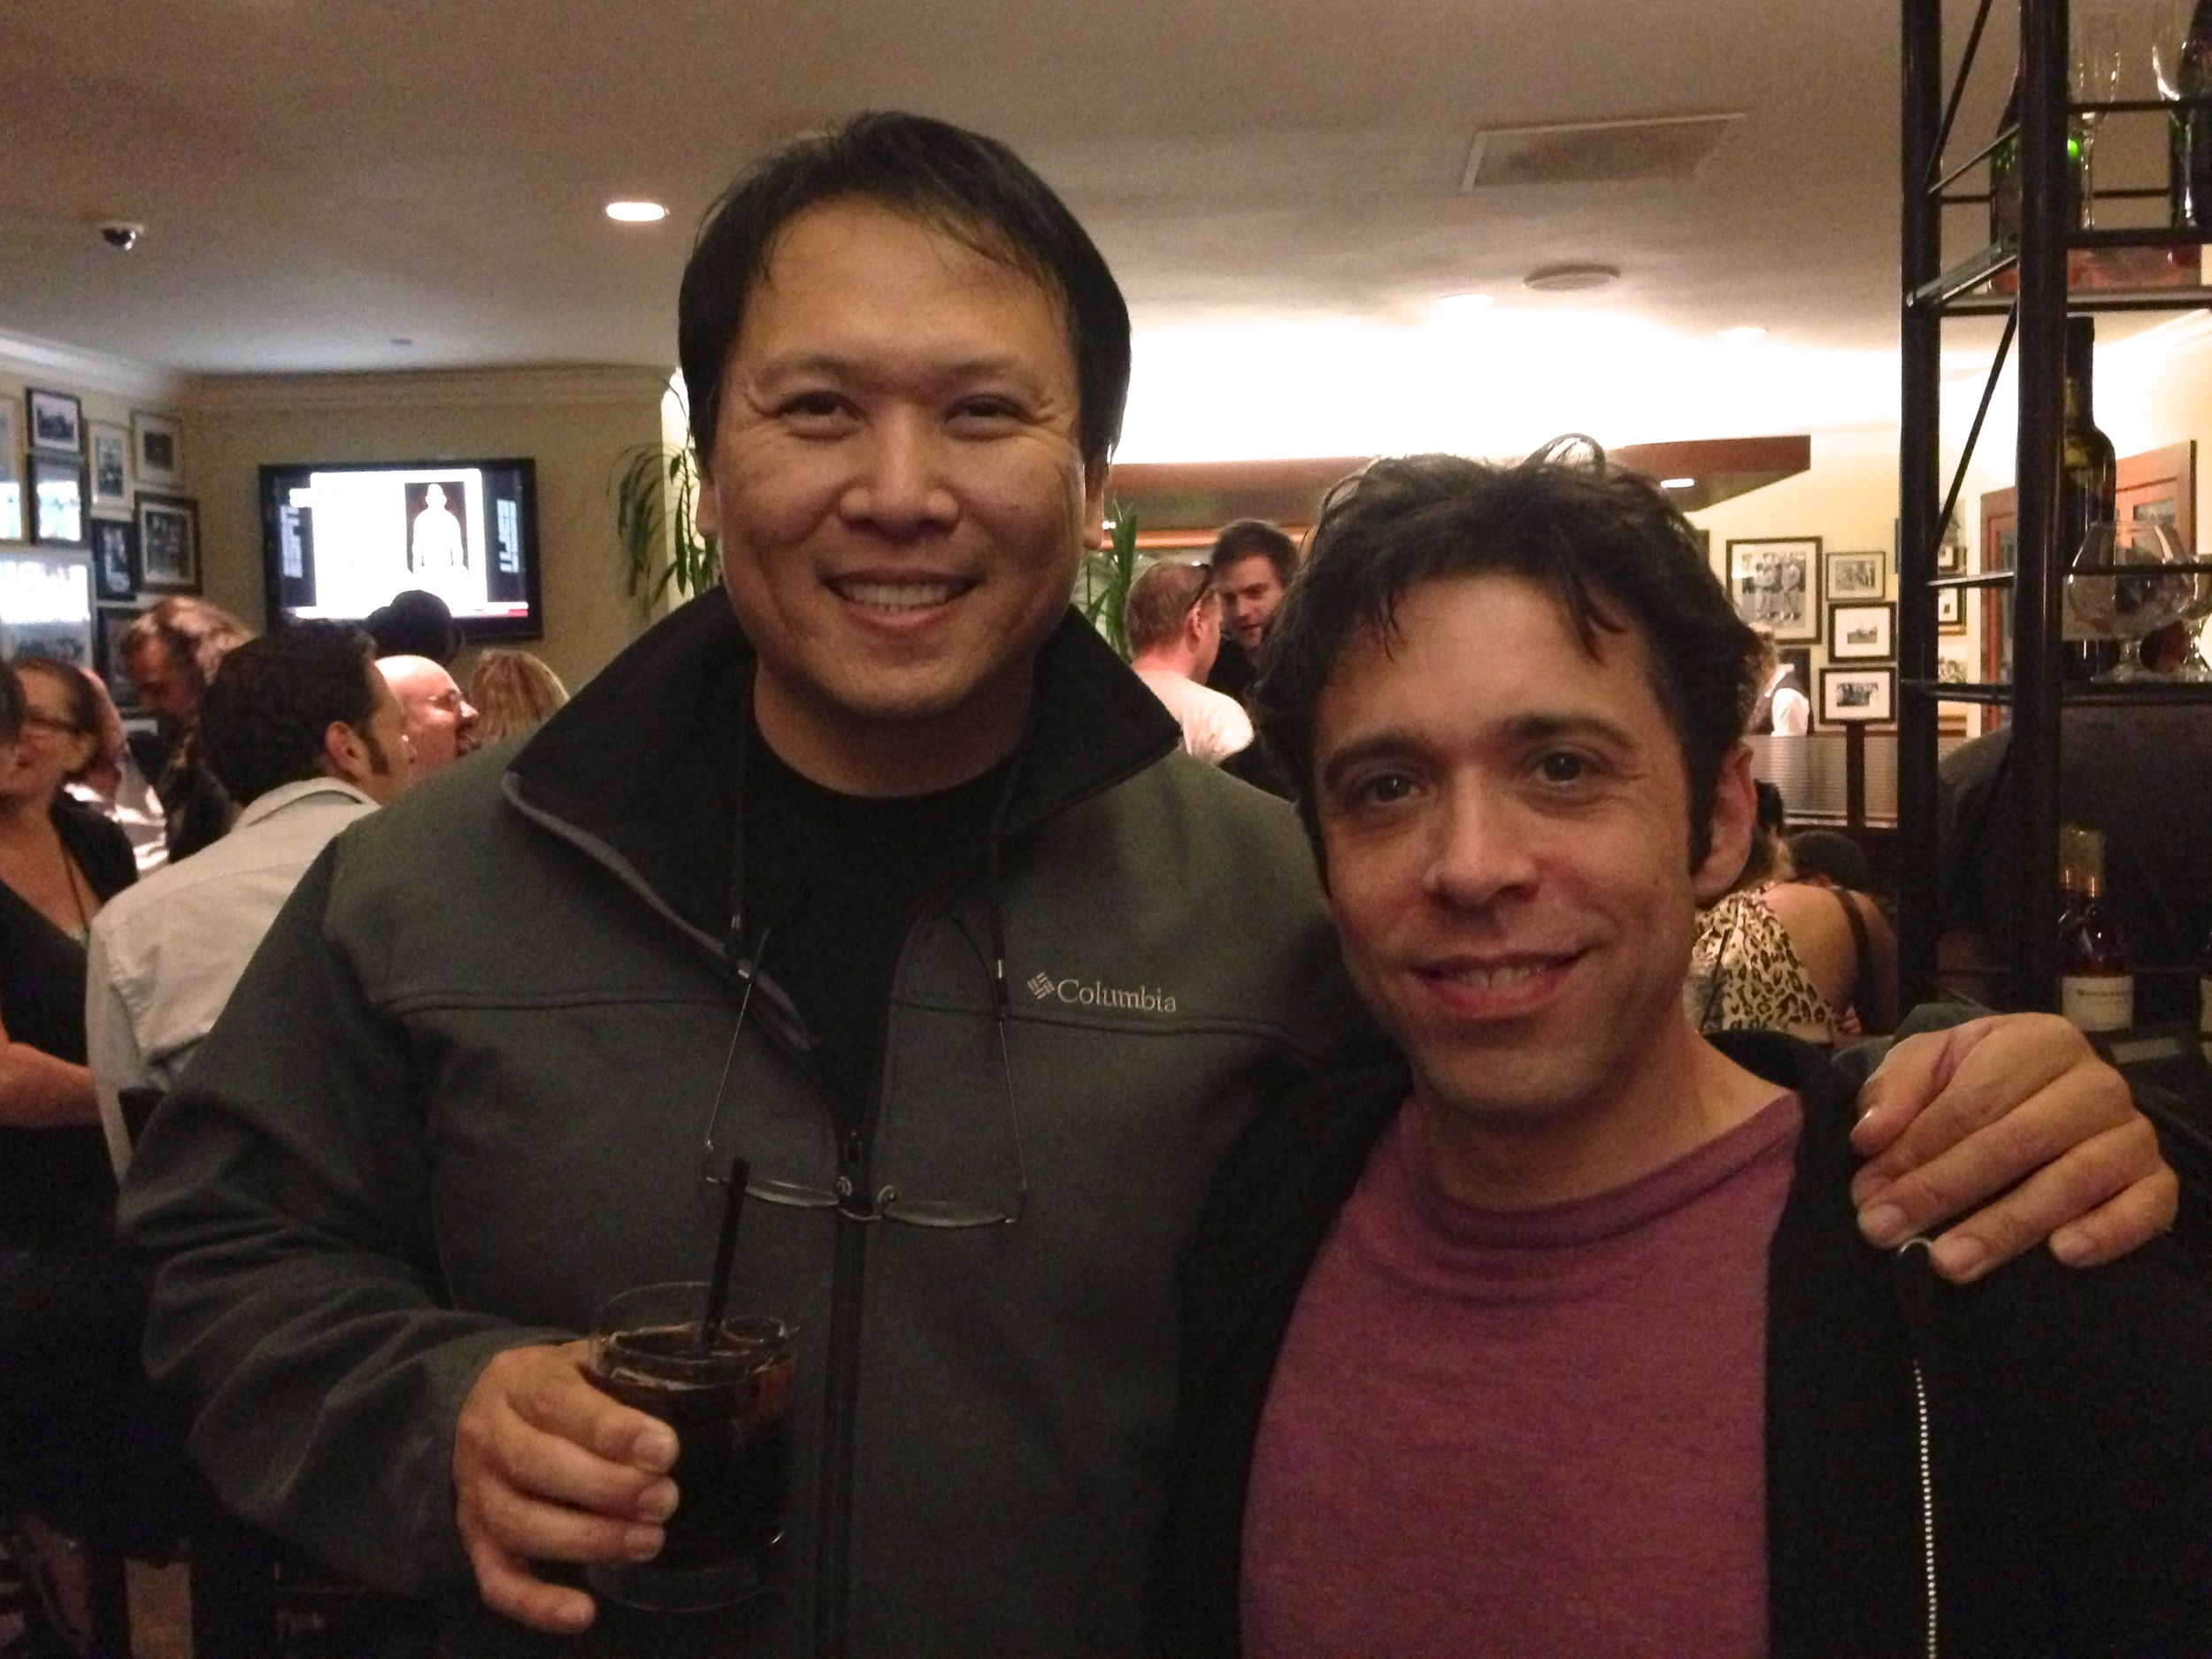 Thrilled to get a chance to hang with Steve Wang